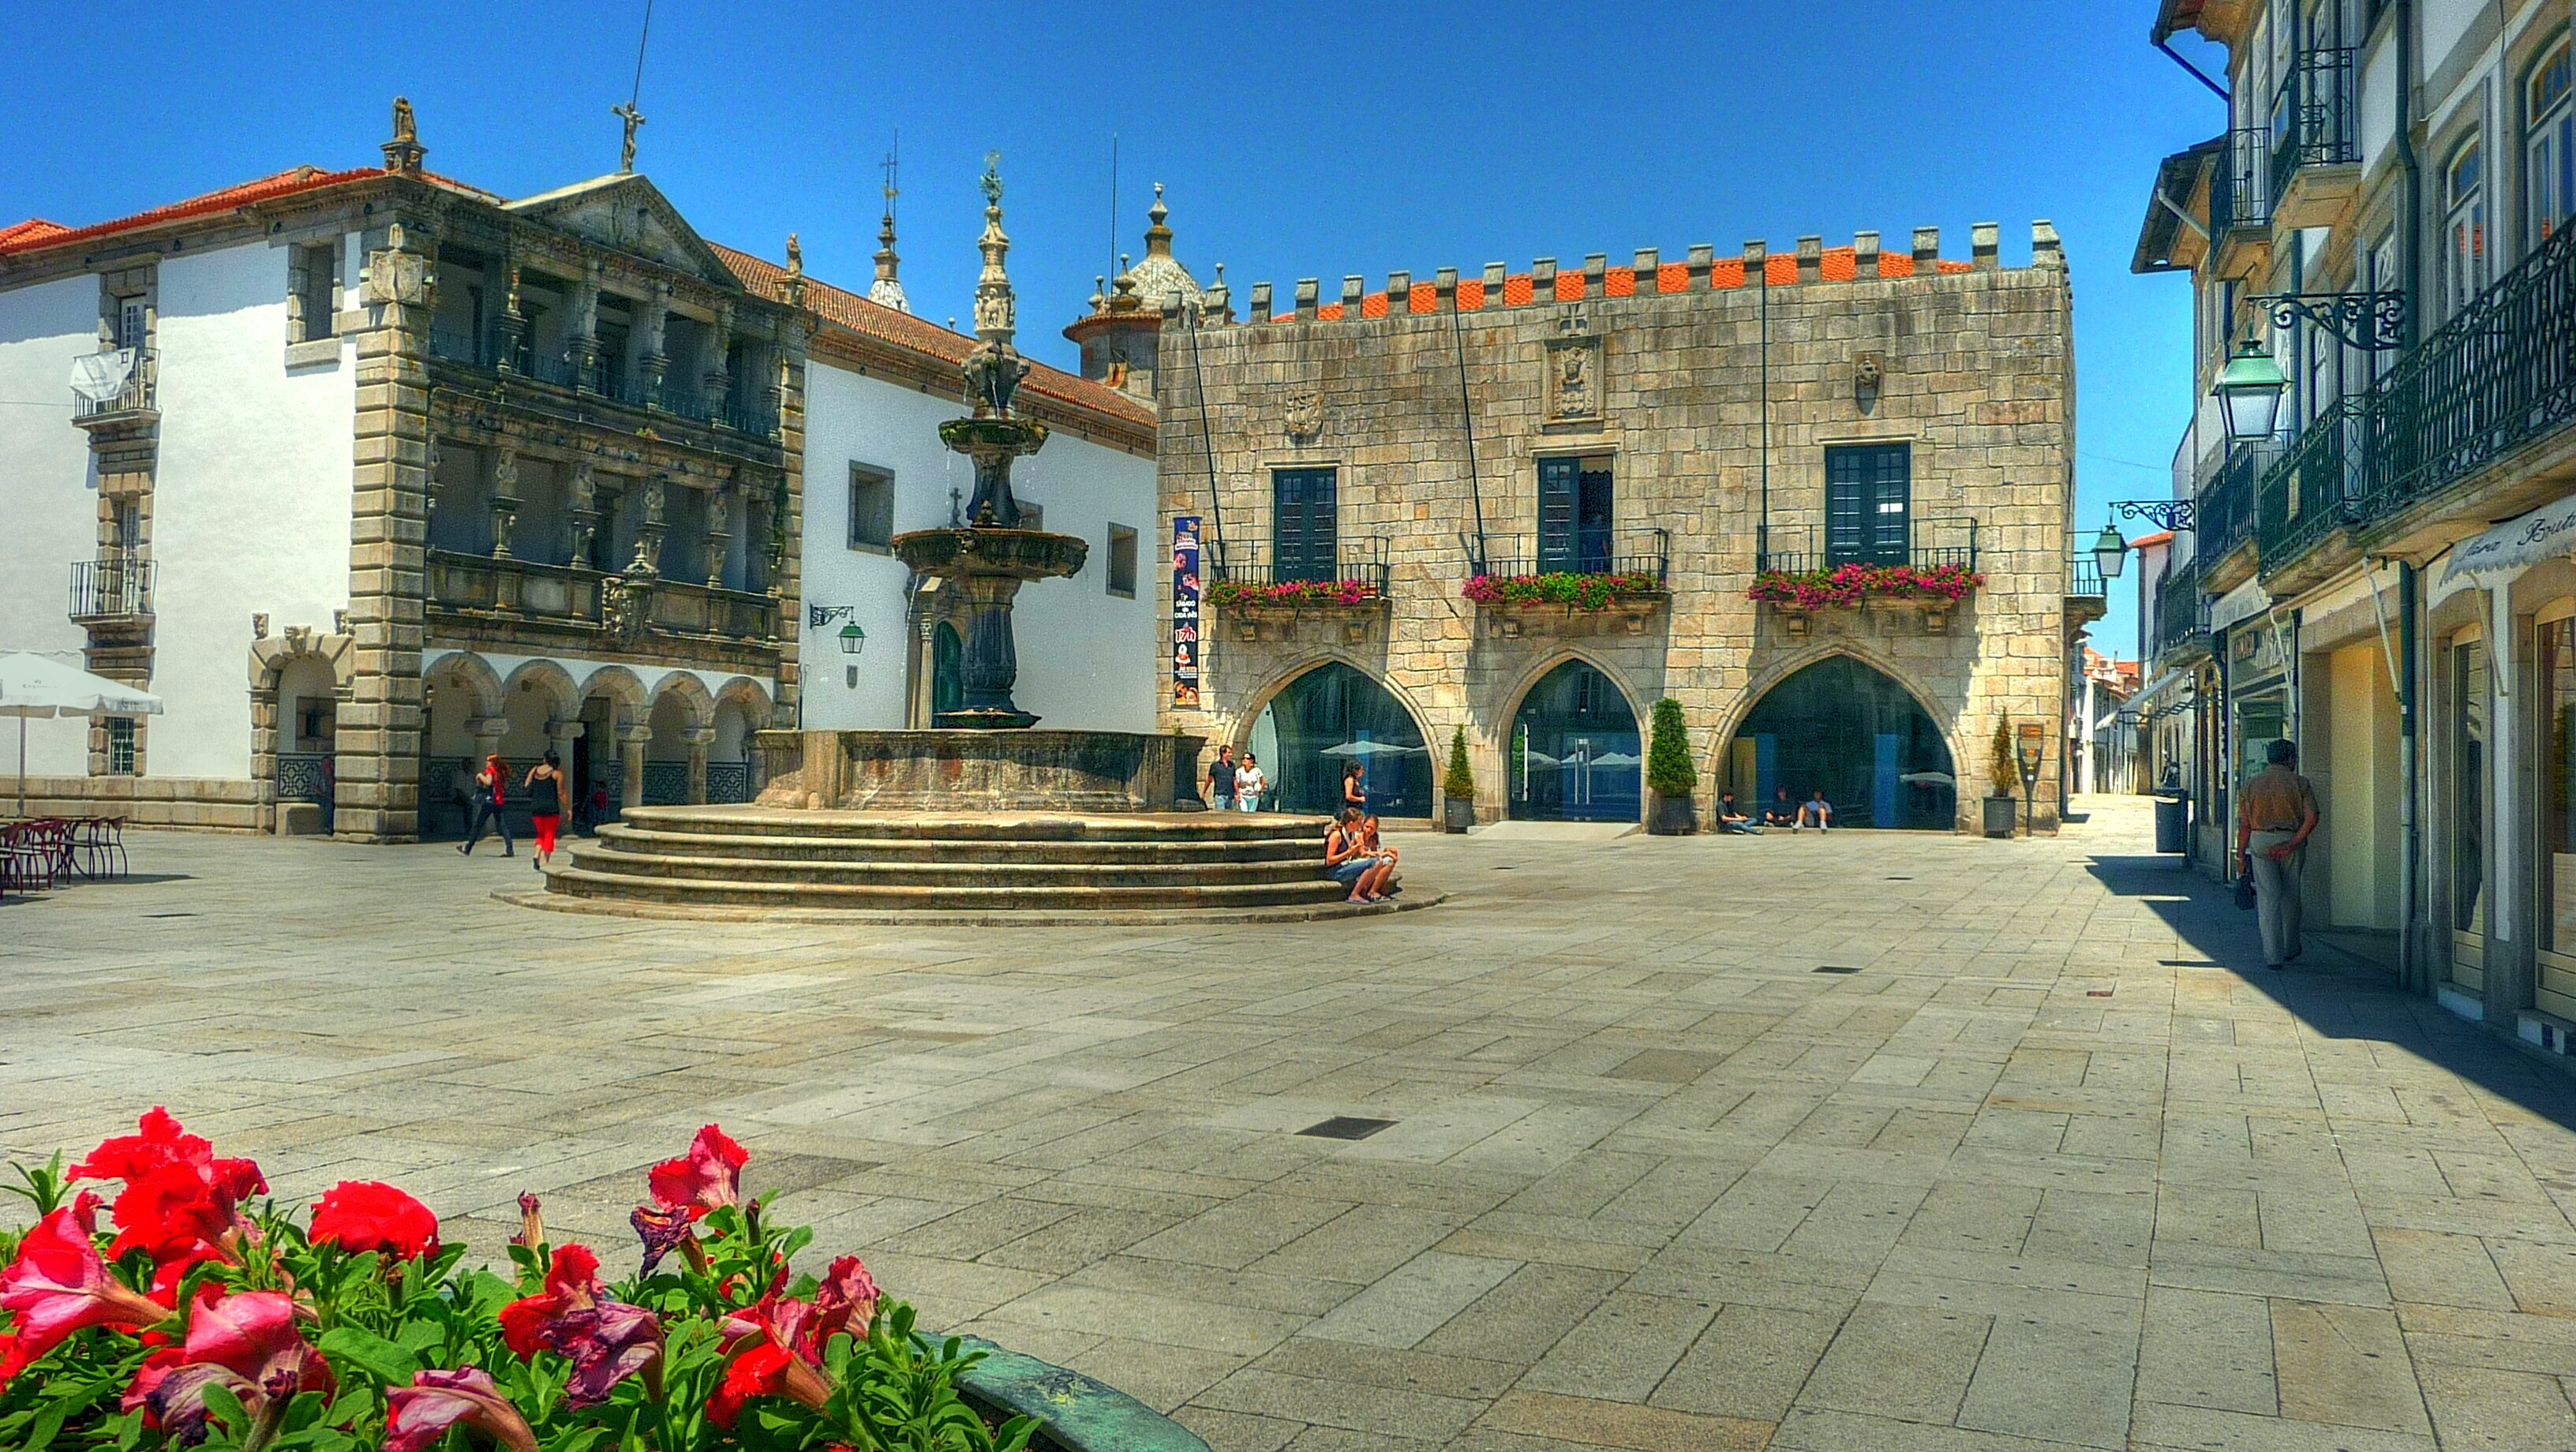 viana do castelo single mature ladies Download viana do castelo stock photos affordable and search from millions of royalty free images, photos and vectors thousands of images added daily.